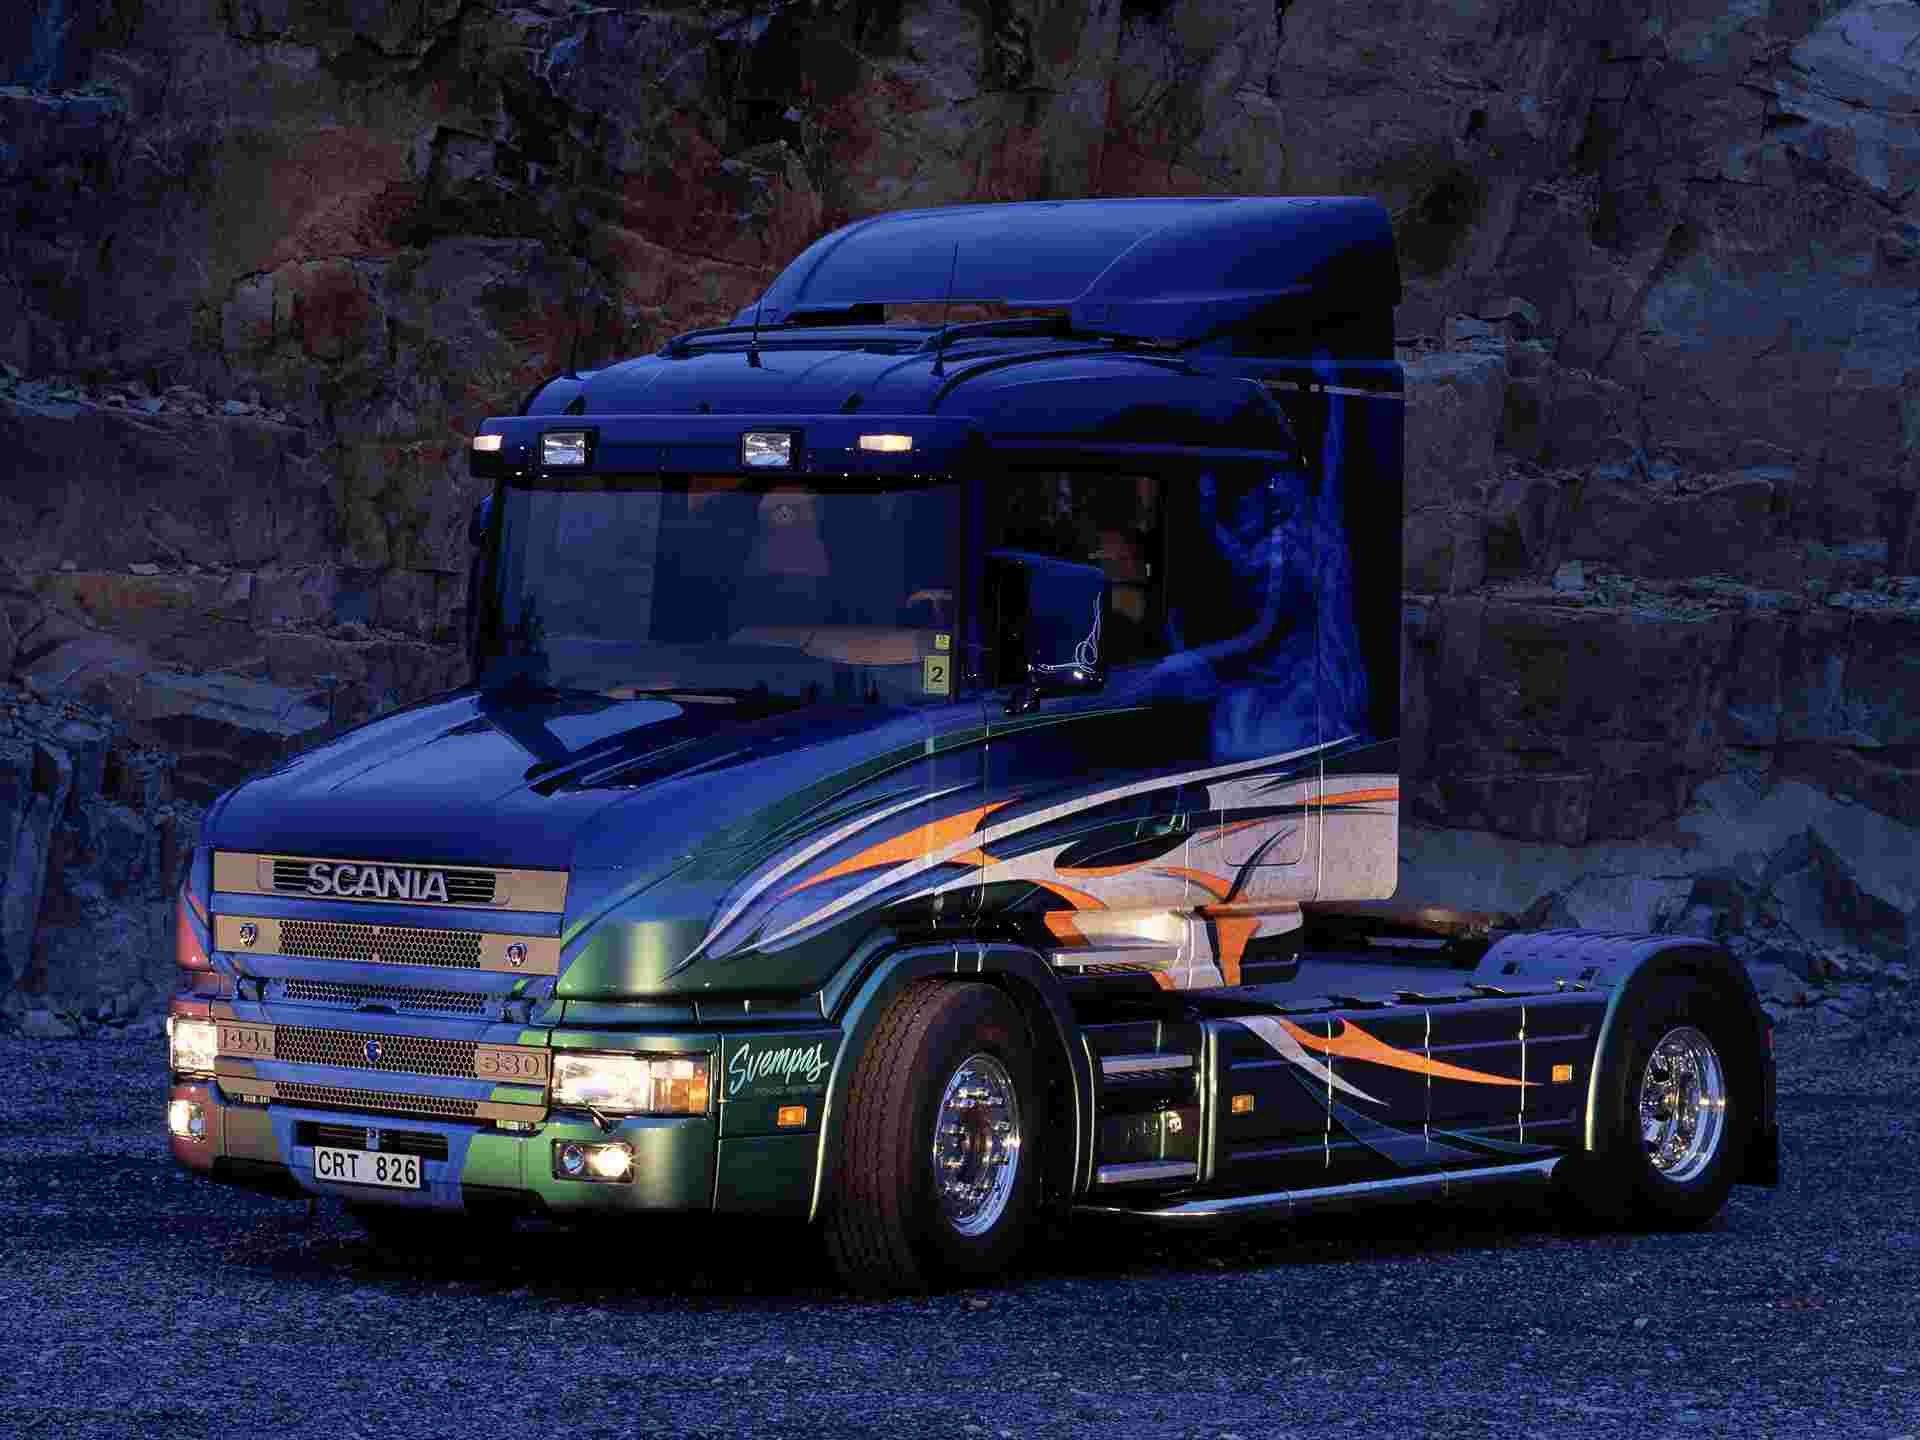 Scania T series 06 wallpaper Scania Trucks Buses 1920x1440